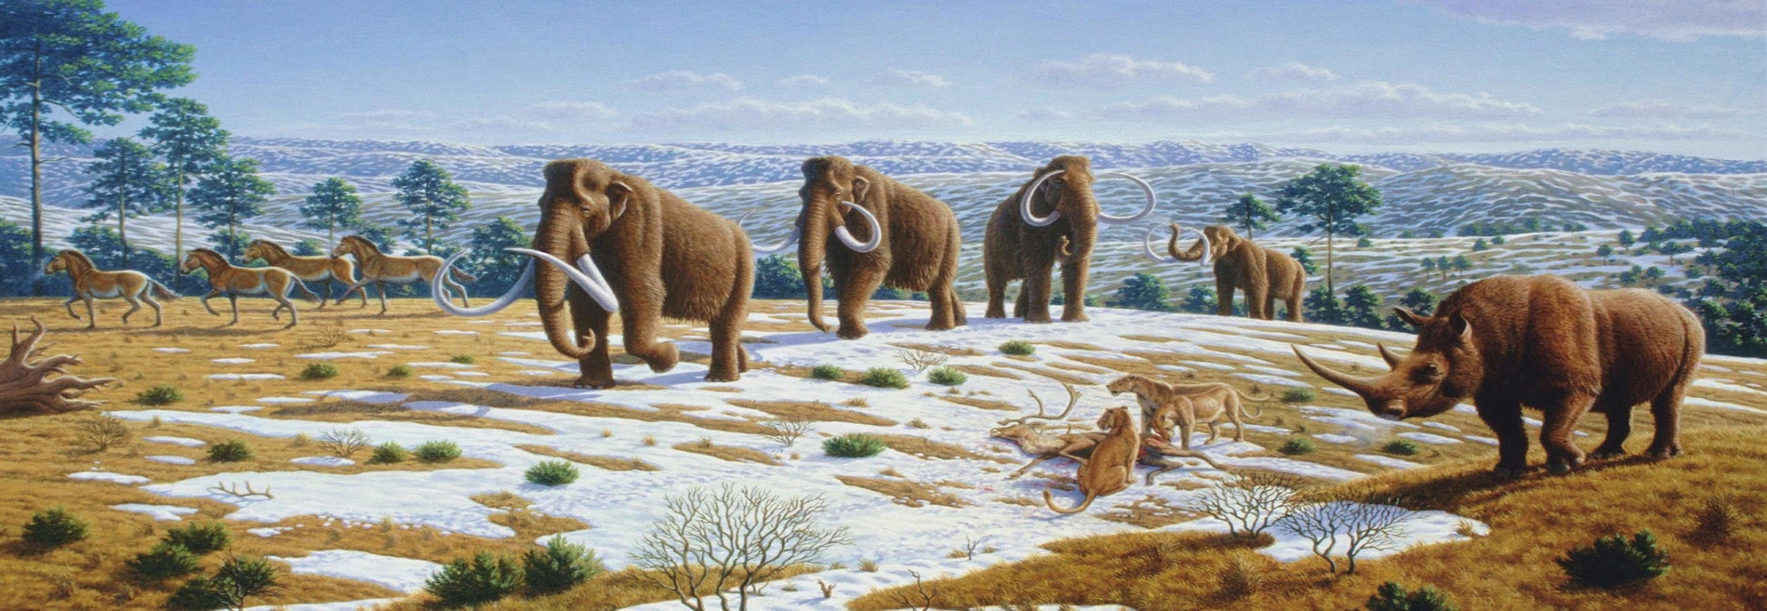 Help Revive The Woolly Mammoth And Restore It To The Arctic Wild! image